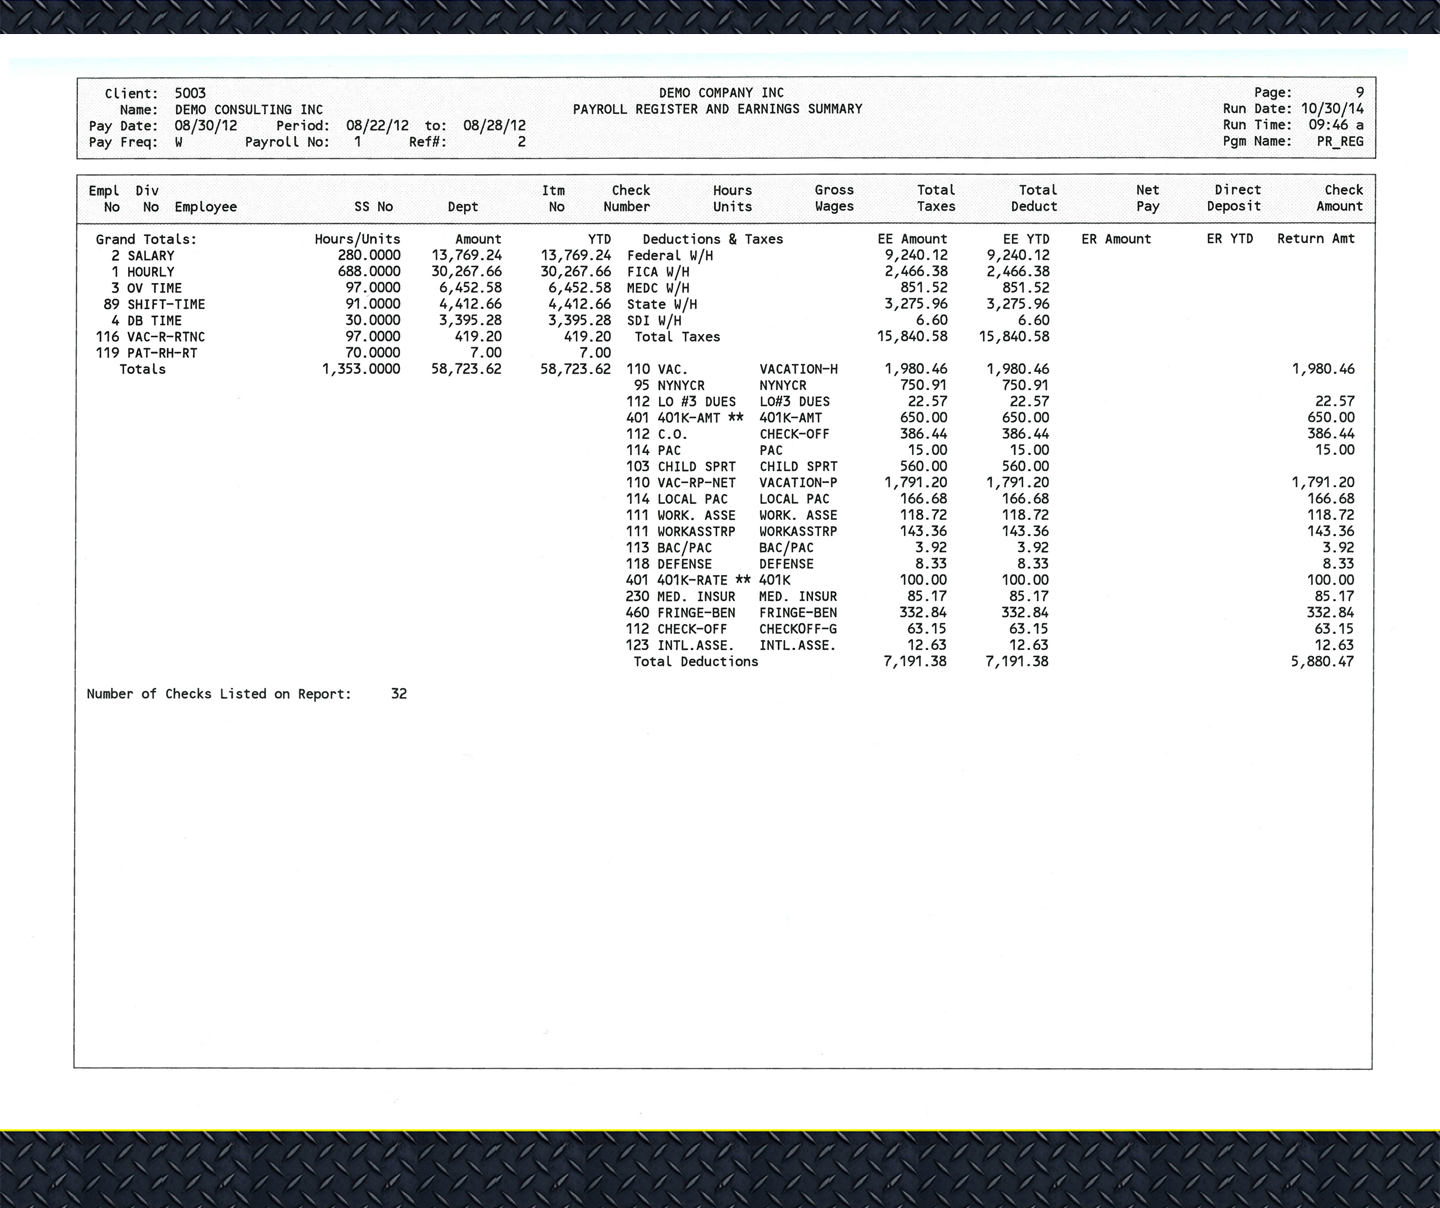 payroll register and earnings summary